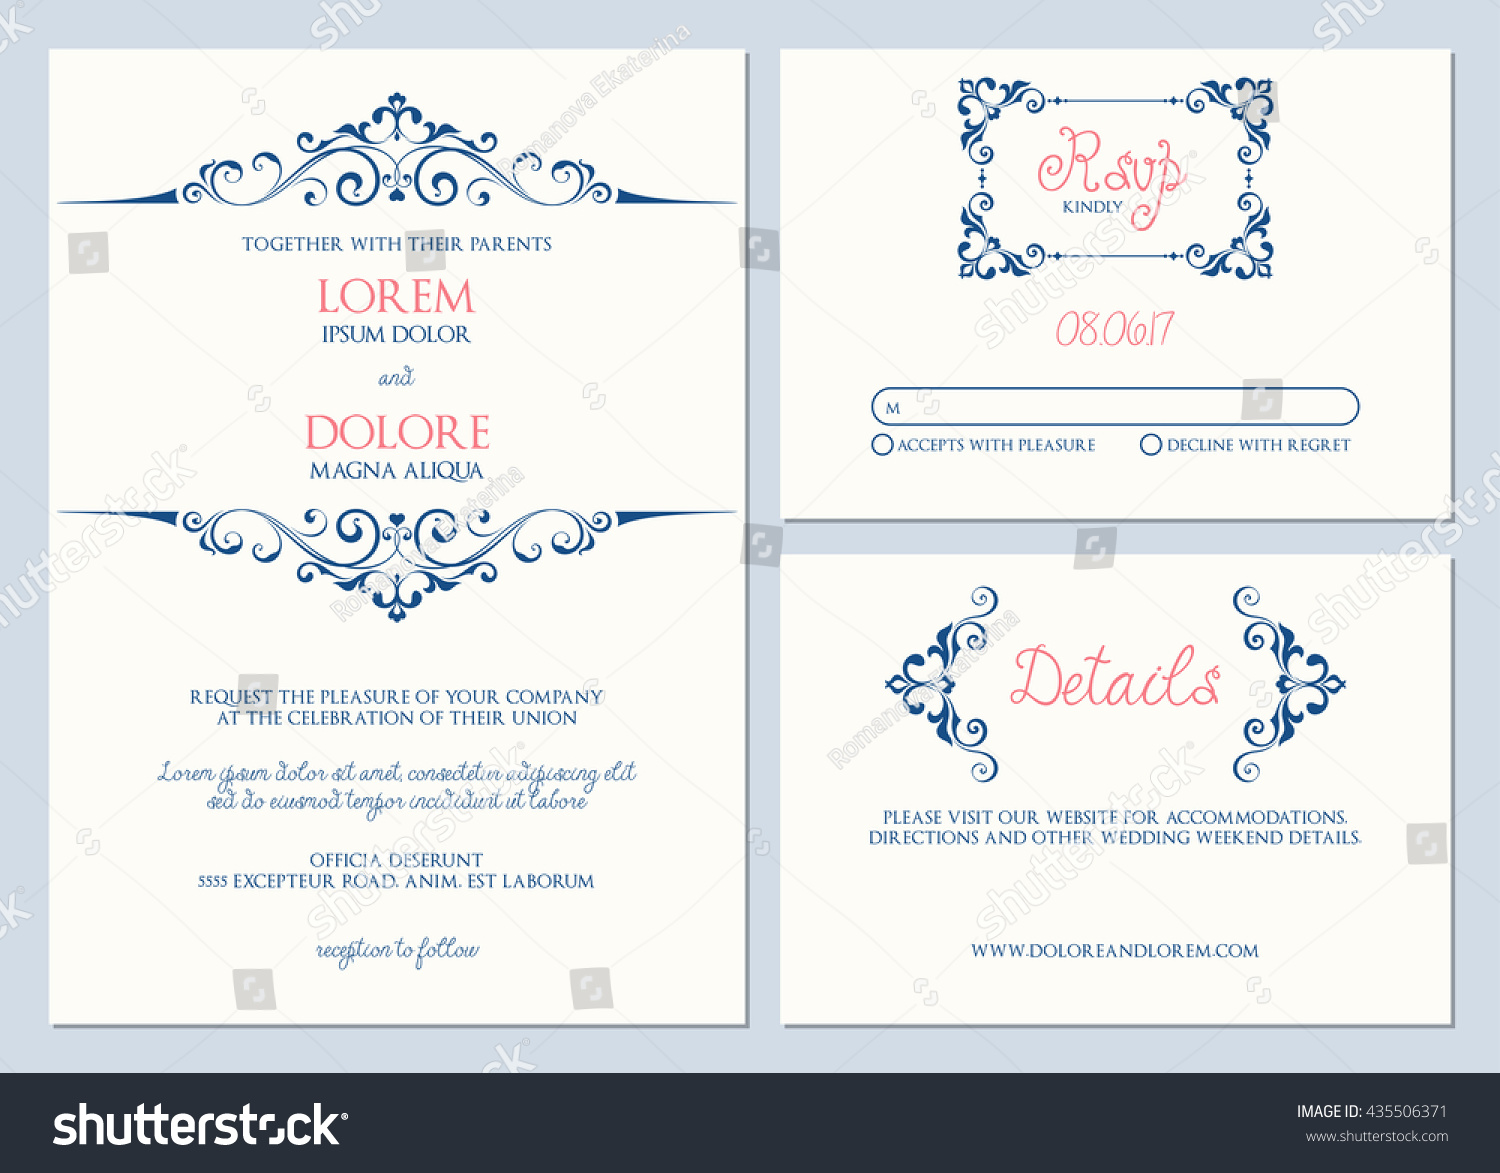 Declining A Wedding Invitation Images Party Invitations Ideas